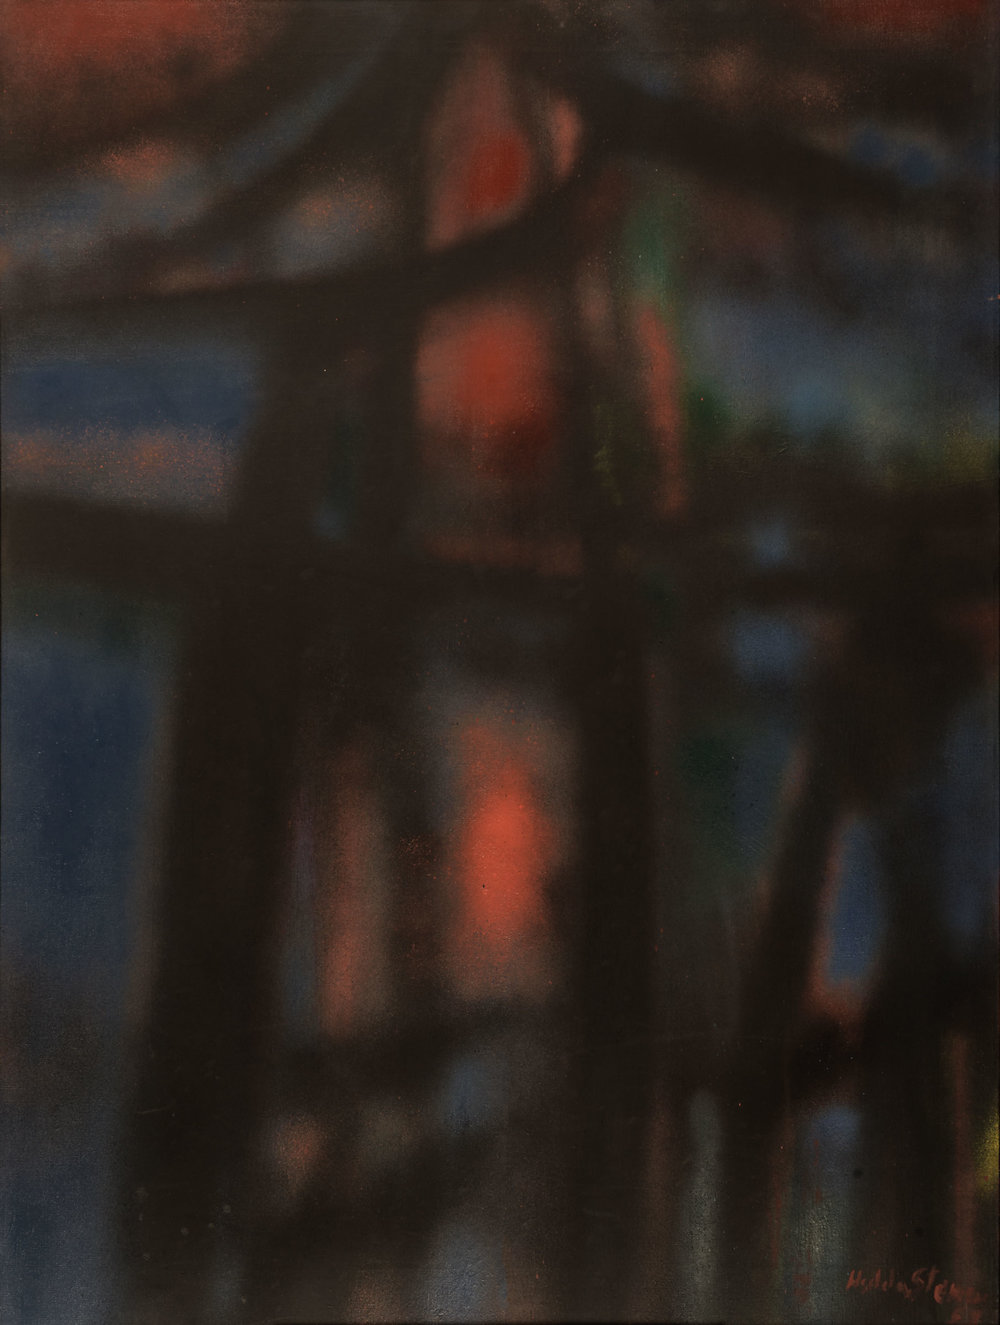 Hedda Sterne, New York No. 1 - 1957, 1957, Oil and spray paint on canvas, 76 5/8 in. x 51 1/4 in., Wadsworth Atheneum Museum of Art, Hartford, CT; Gift of Susan Morse Hilles, 1959.88